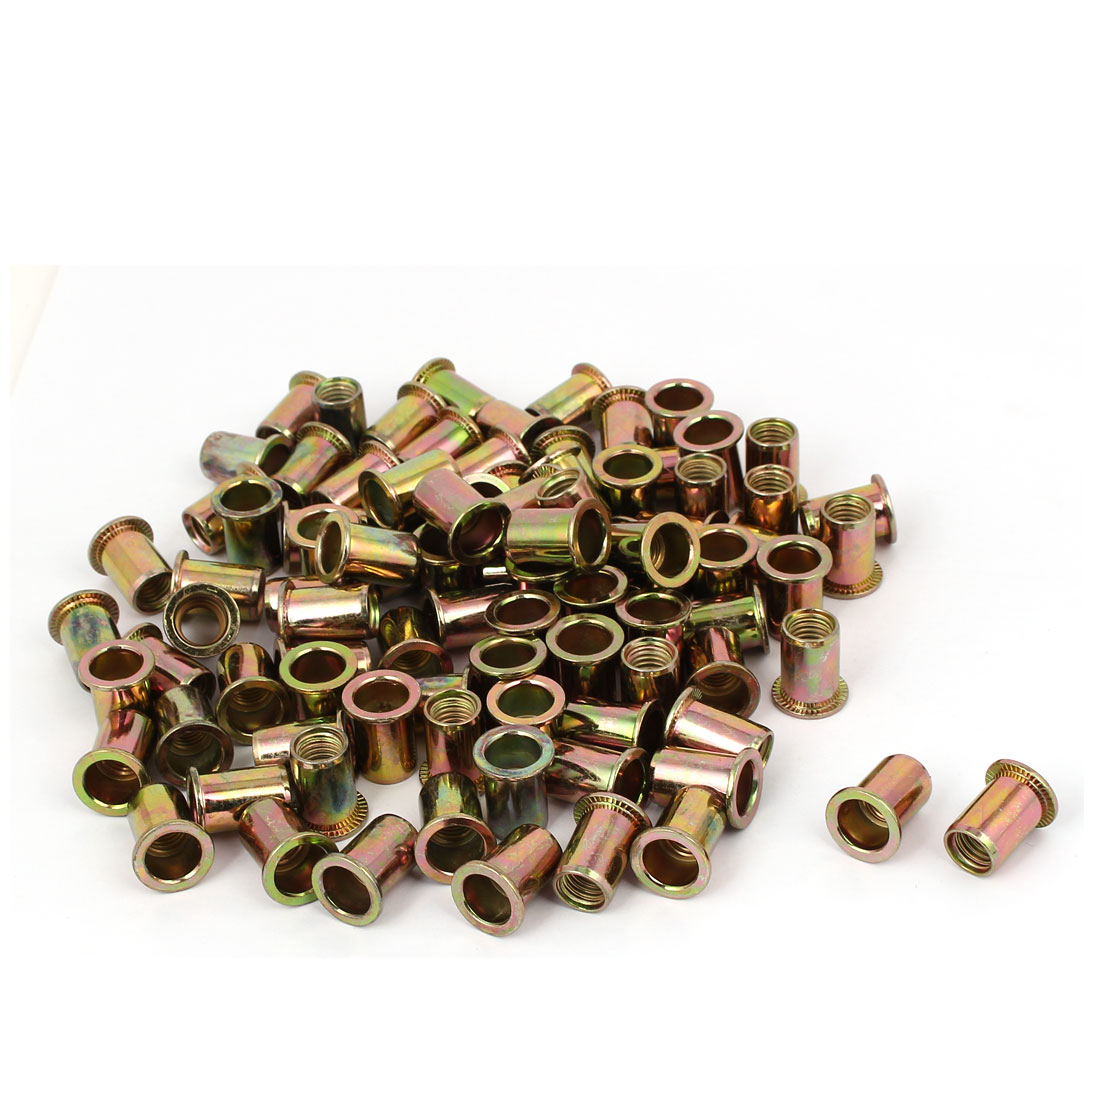 M10 x 20mm Zinc Plated Flat Head Rivet Nut Insert Nutsert 100PCS